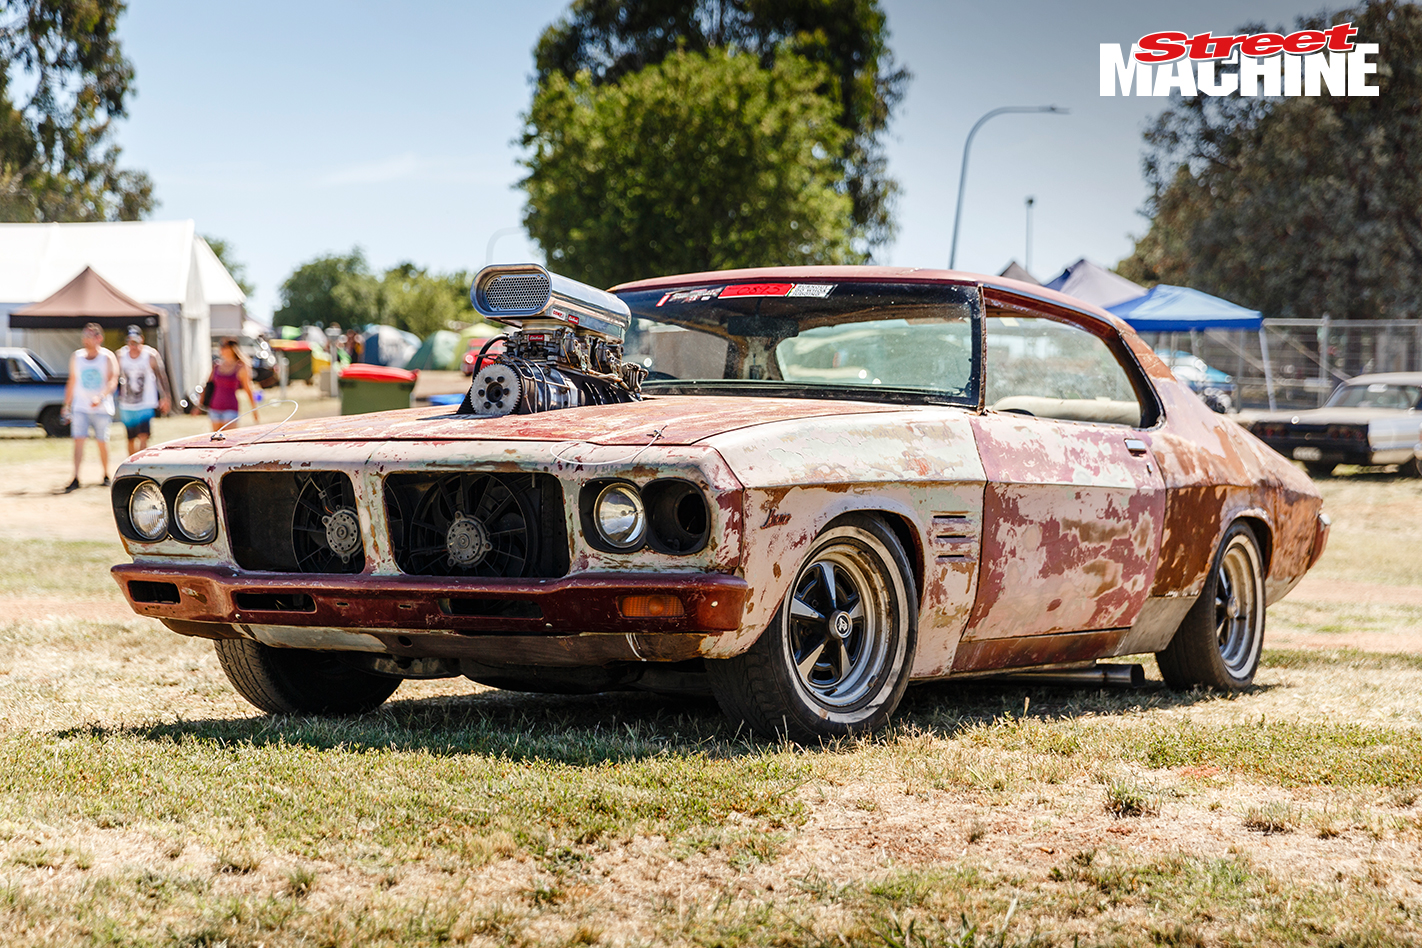 Hq Old Machinery Parts : Rusty blown chev powered hq monaro